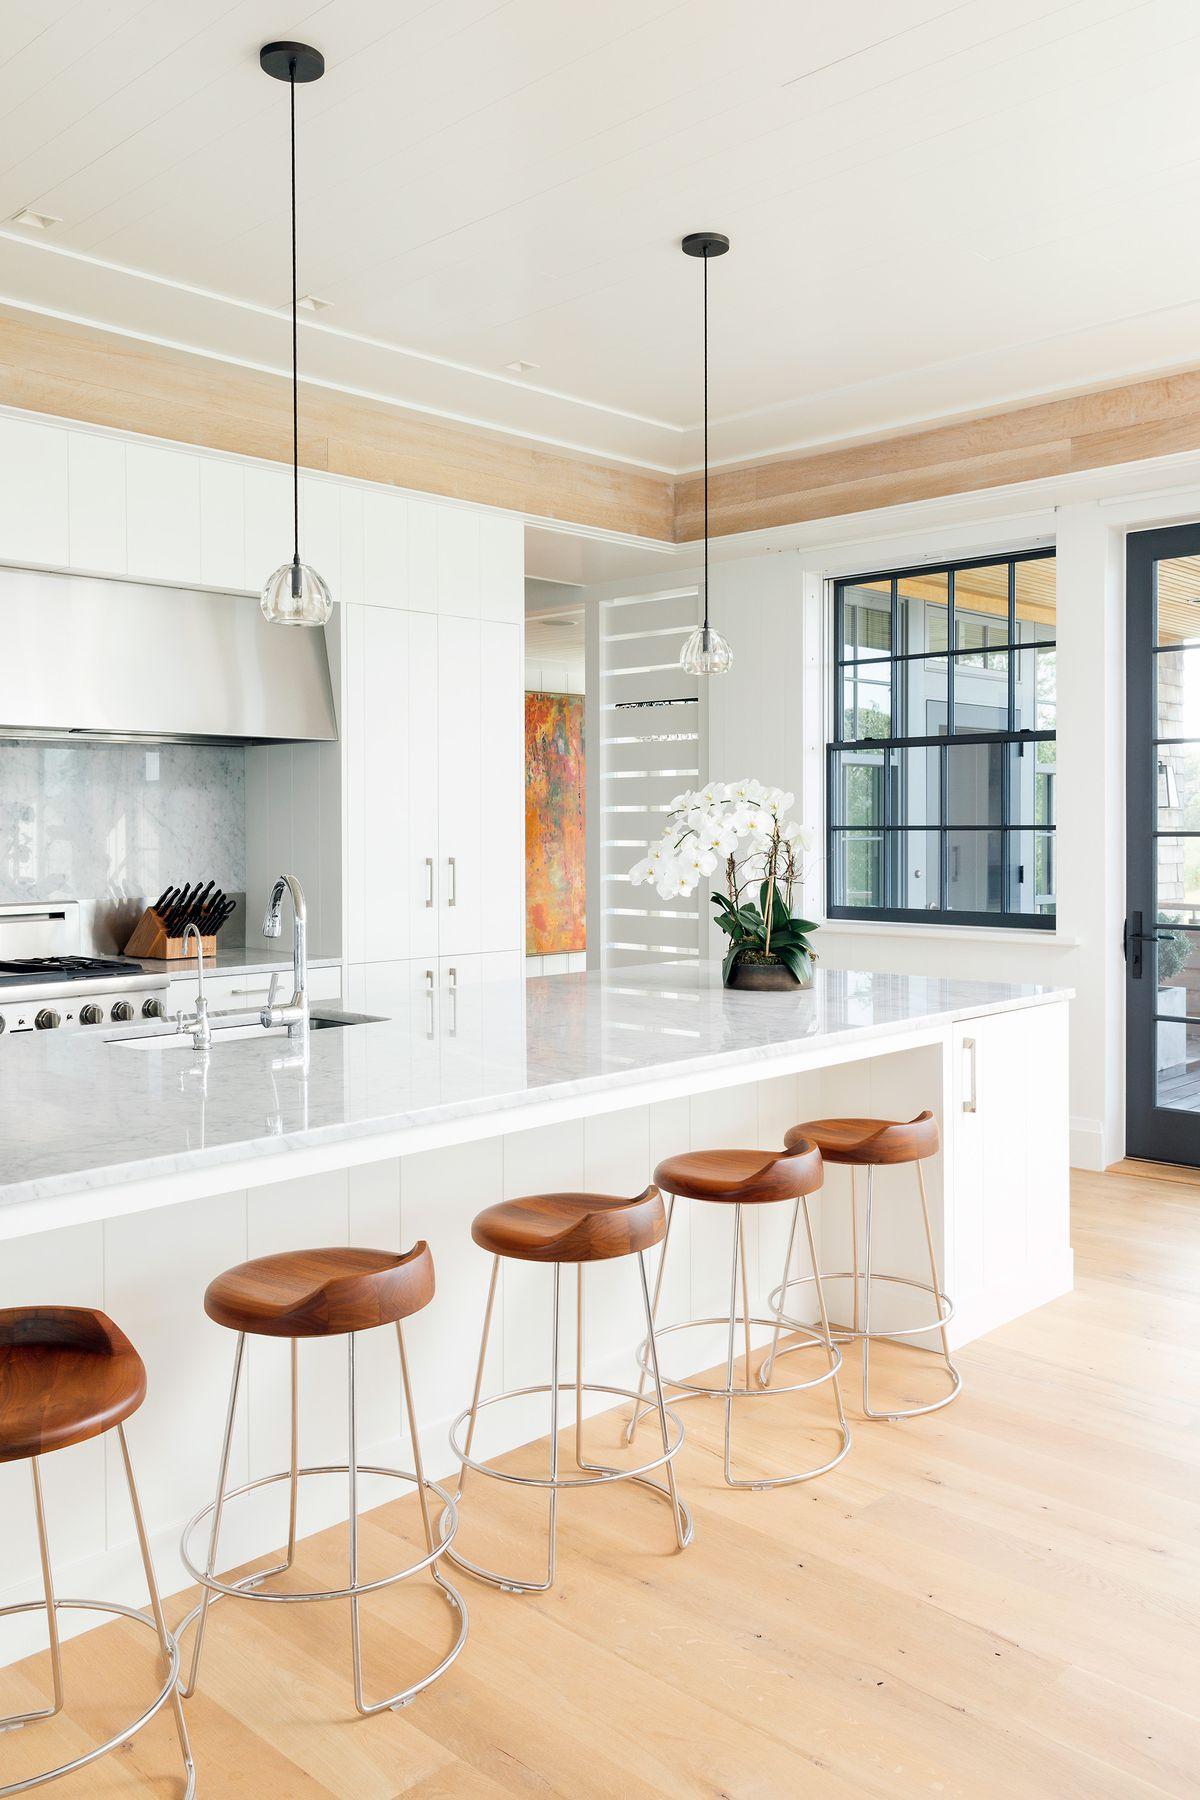 A white kitchen with a band of natural wood along the crown molding features a generous eat-in island.